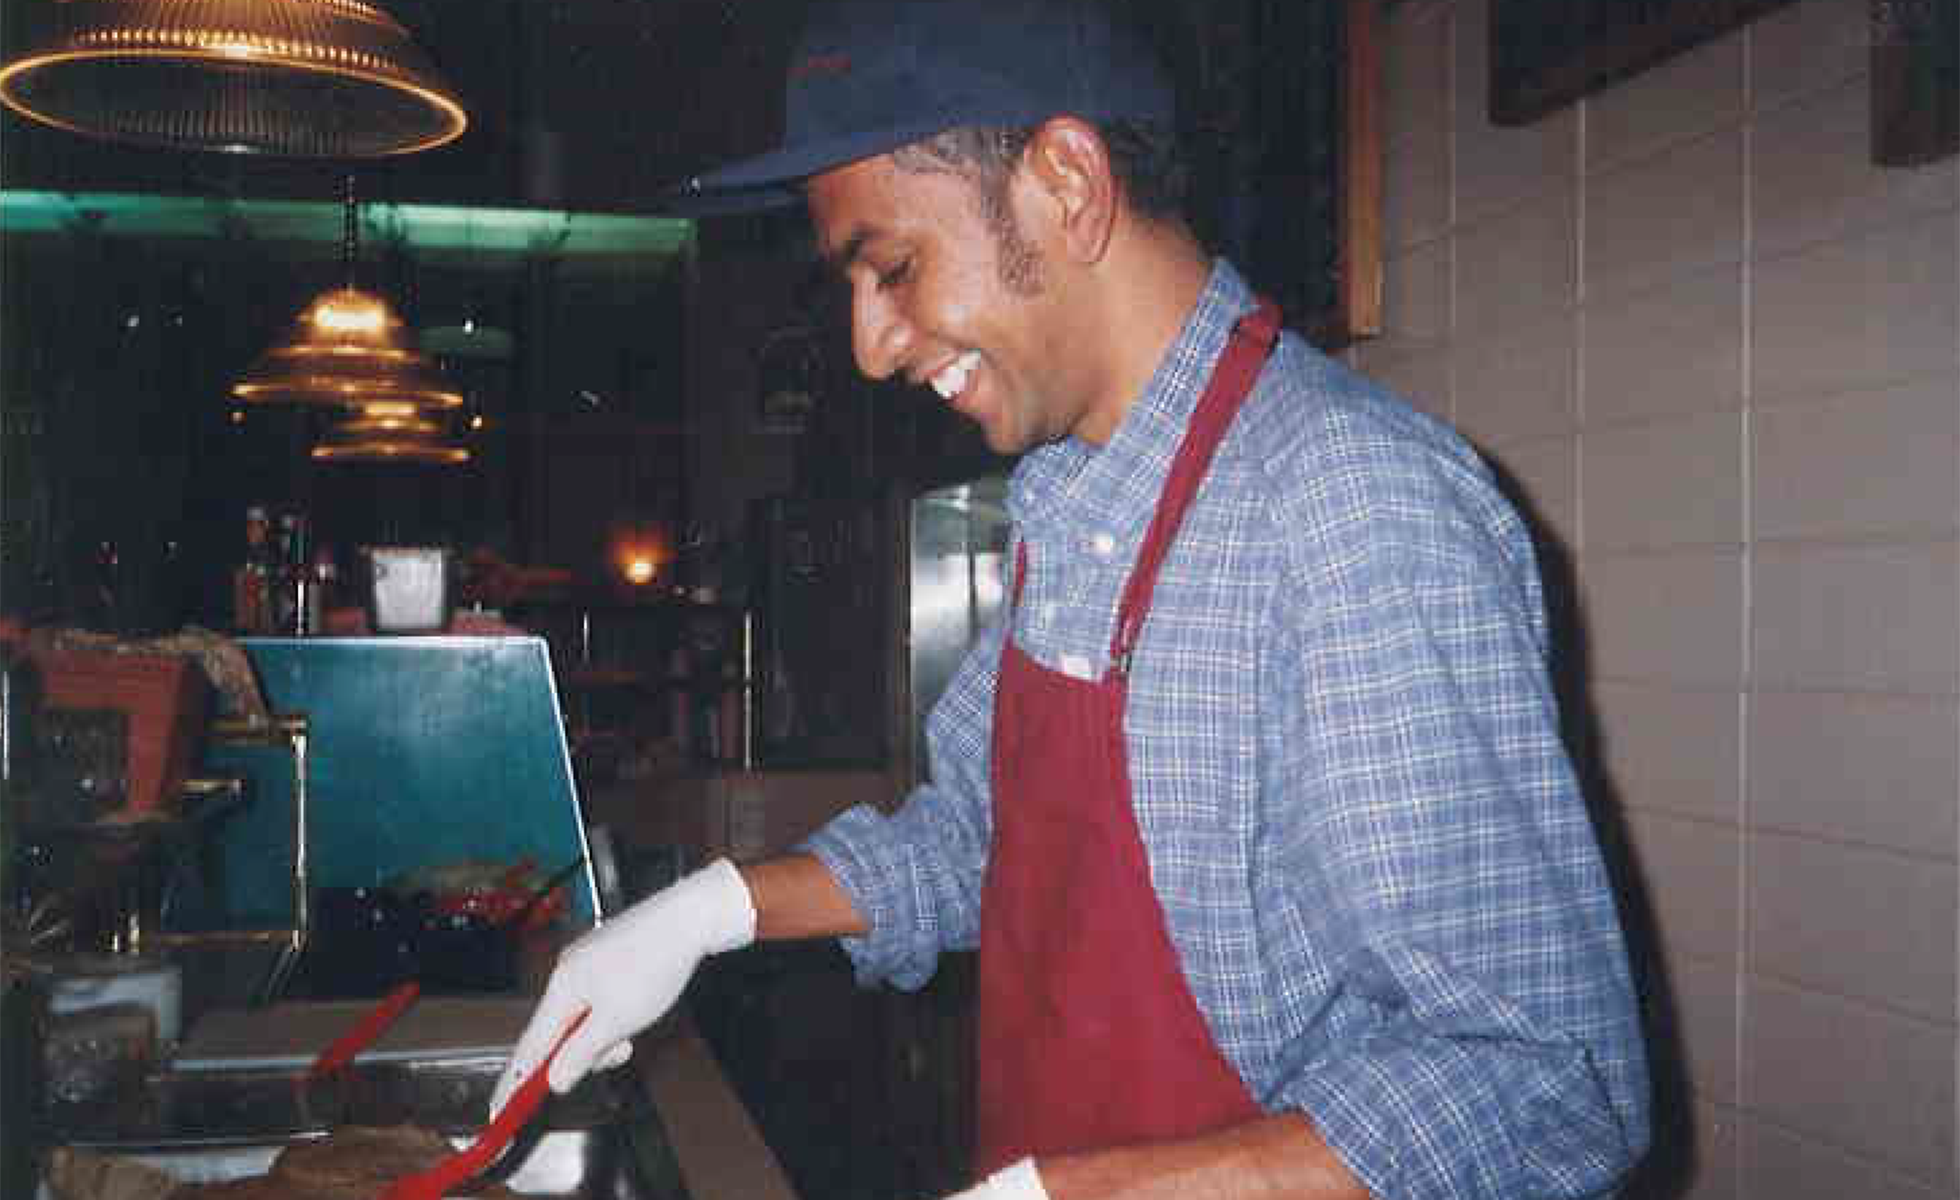 DeSilva loved long-distance running and cooking for others.